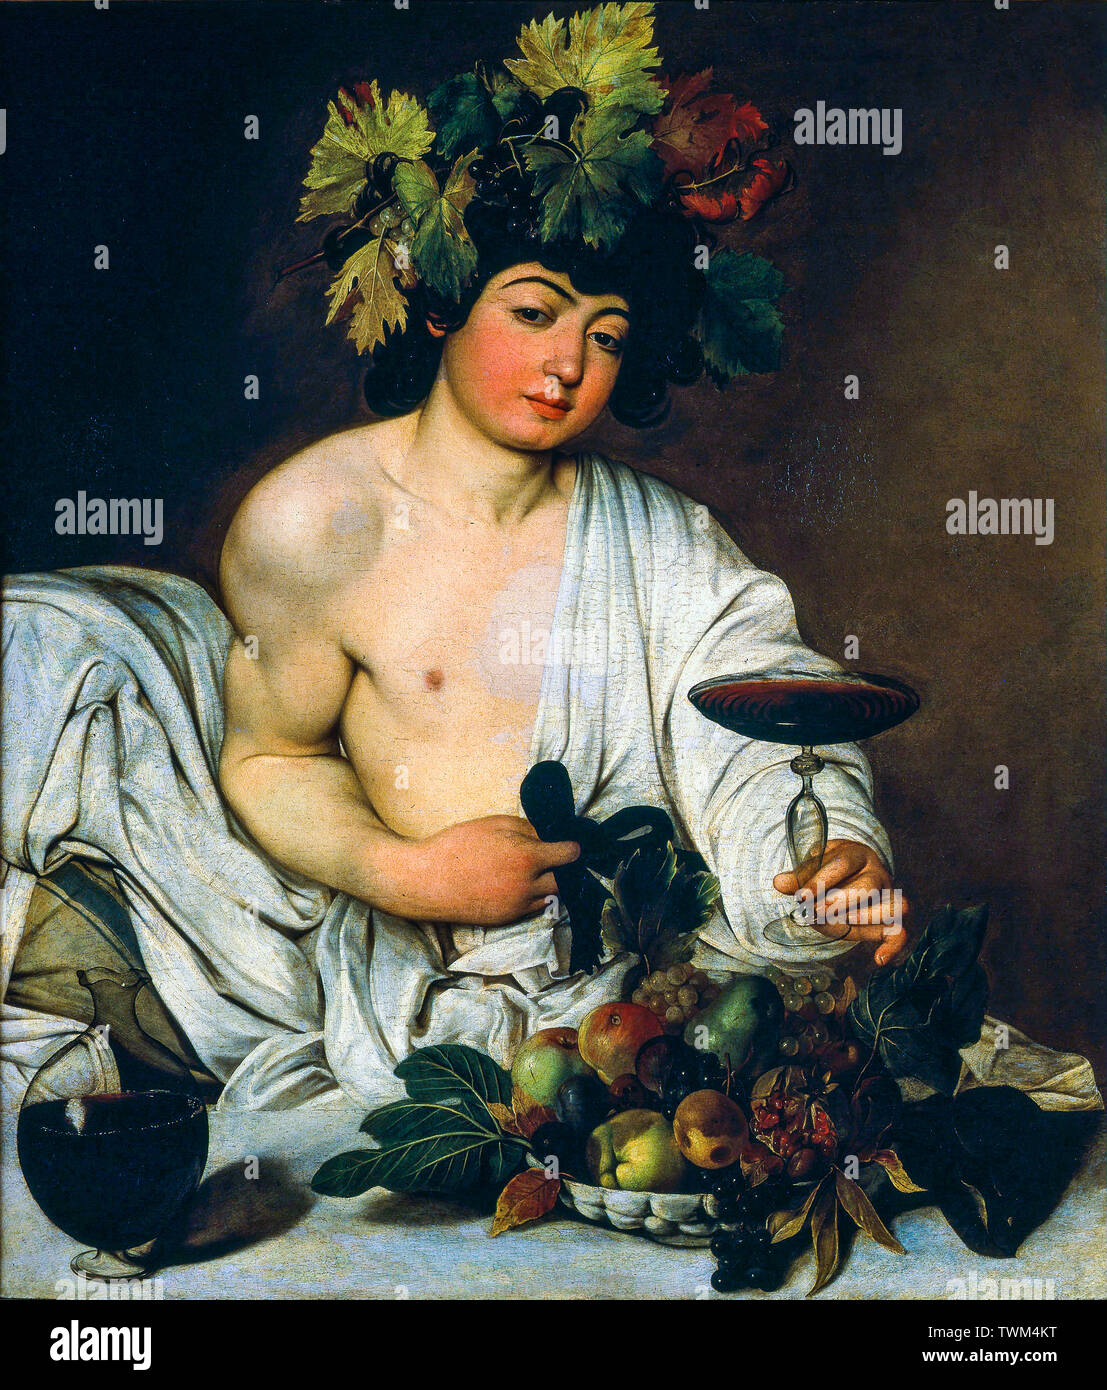 Caravaggio, The Adolescent Bacchus, painting, circa 1595 Stock Photo